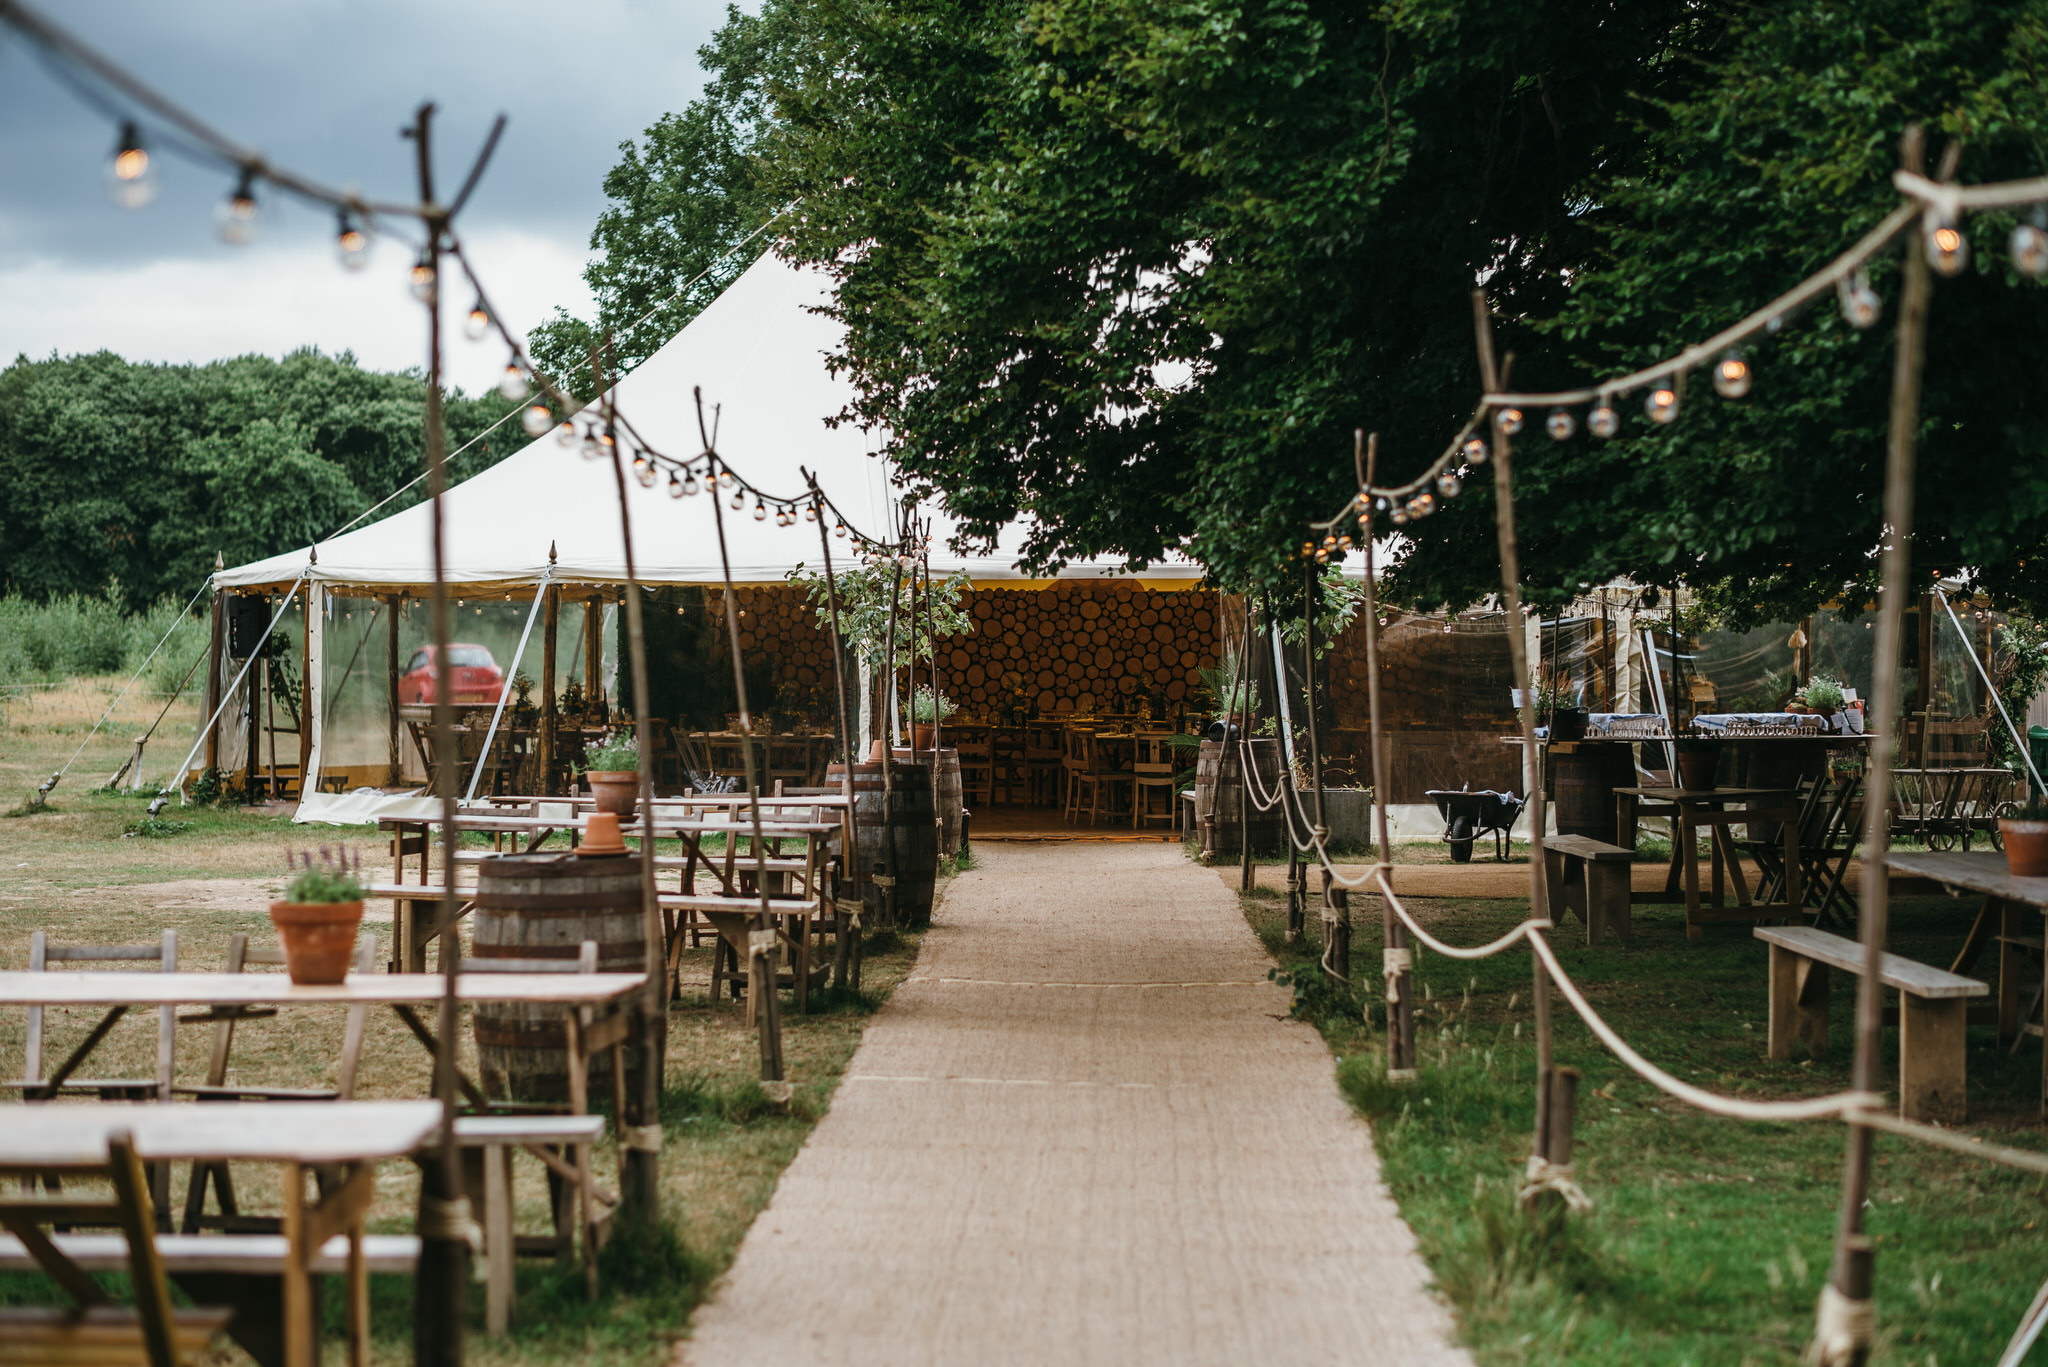 The dreys kent wedding marquee